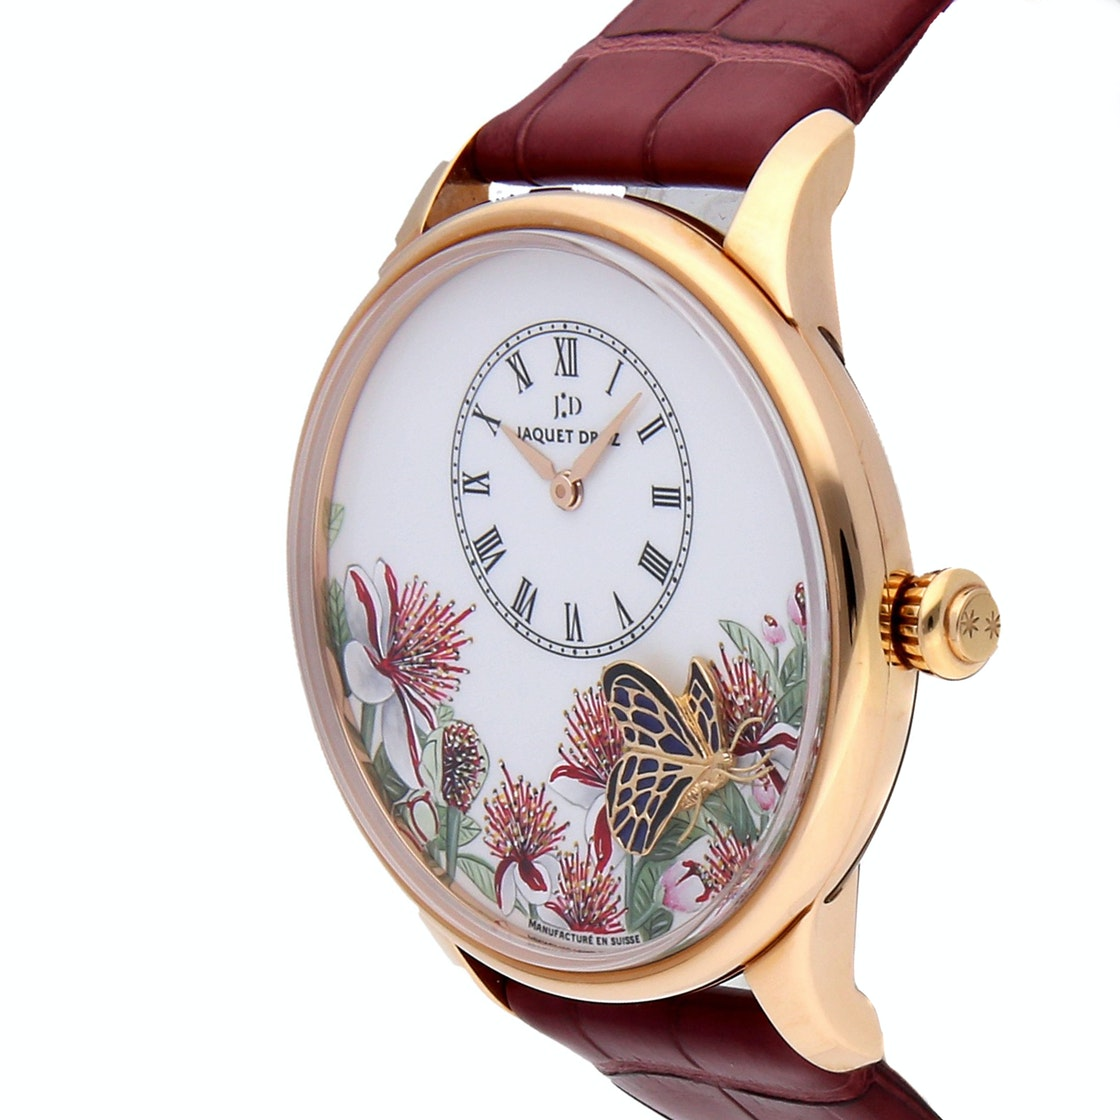 Jaquet Droz Petite Heure Butterfly Journey Limited Edition J005033289